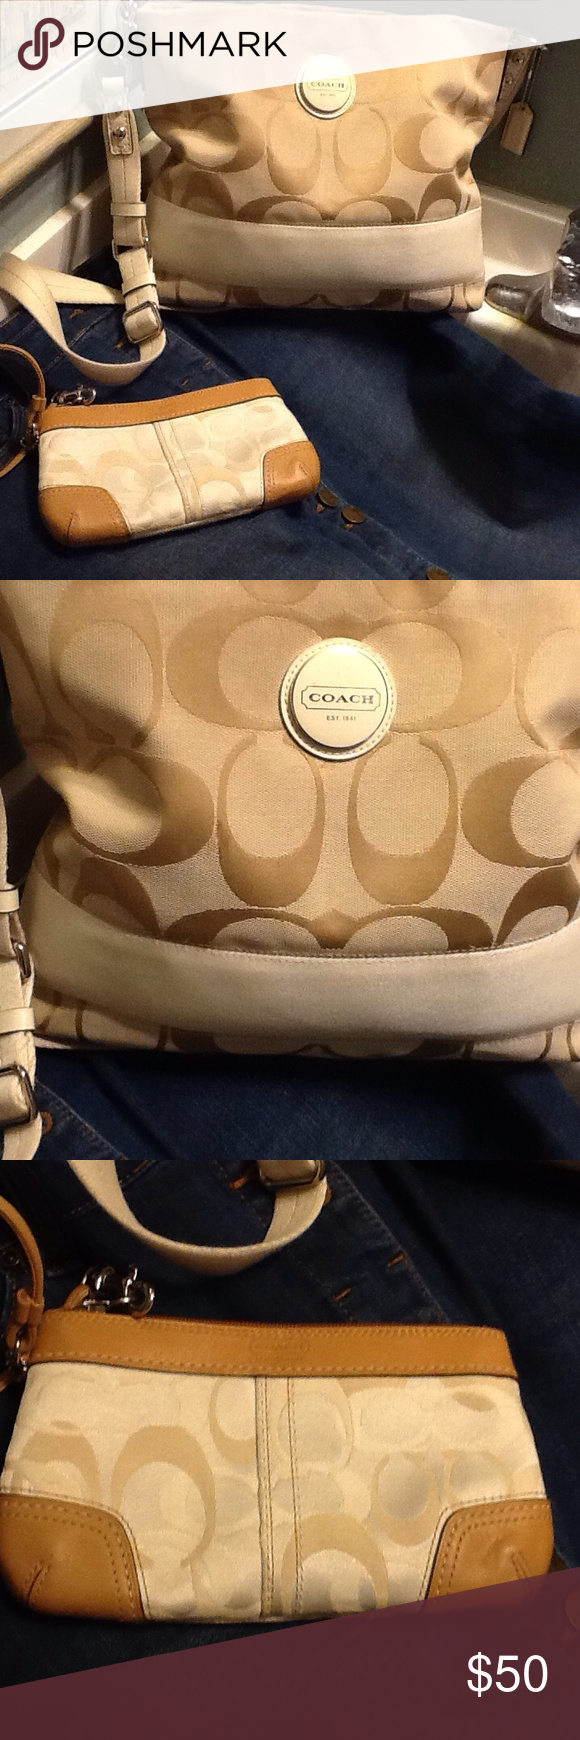 Coach cross body and wallet Great condition! Coach Bags Crossbody Bags